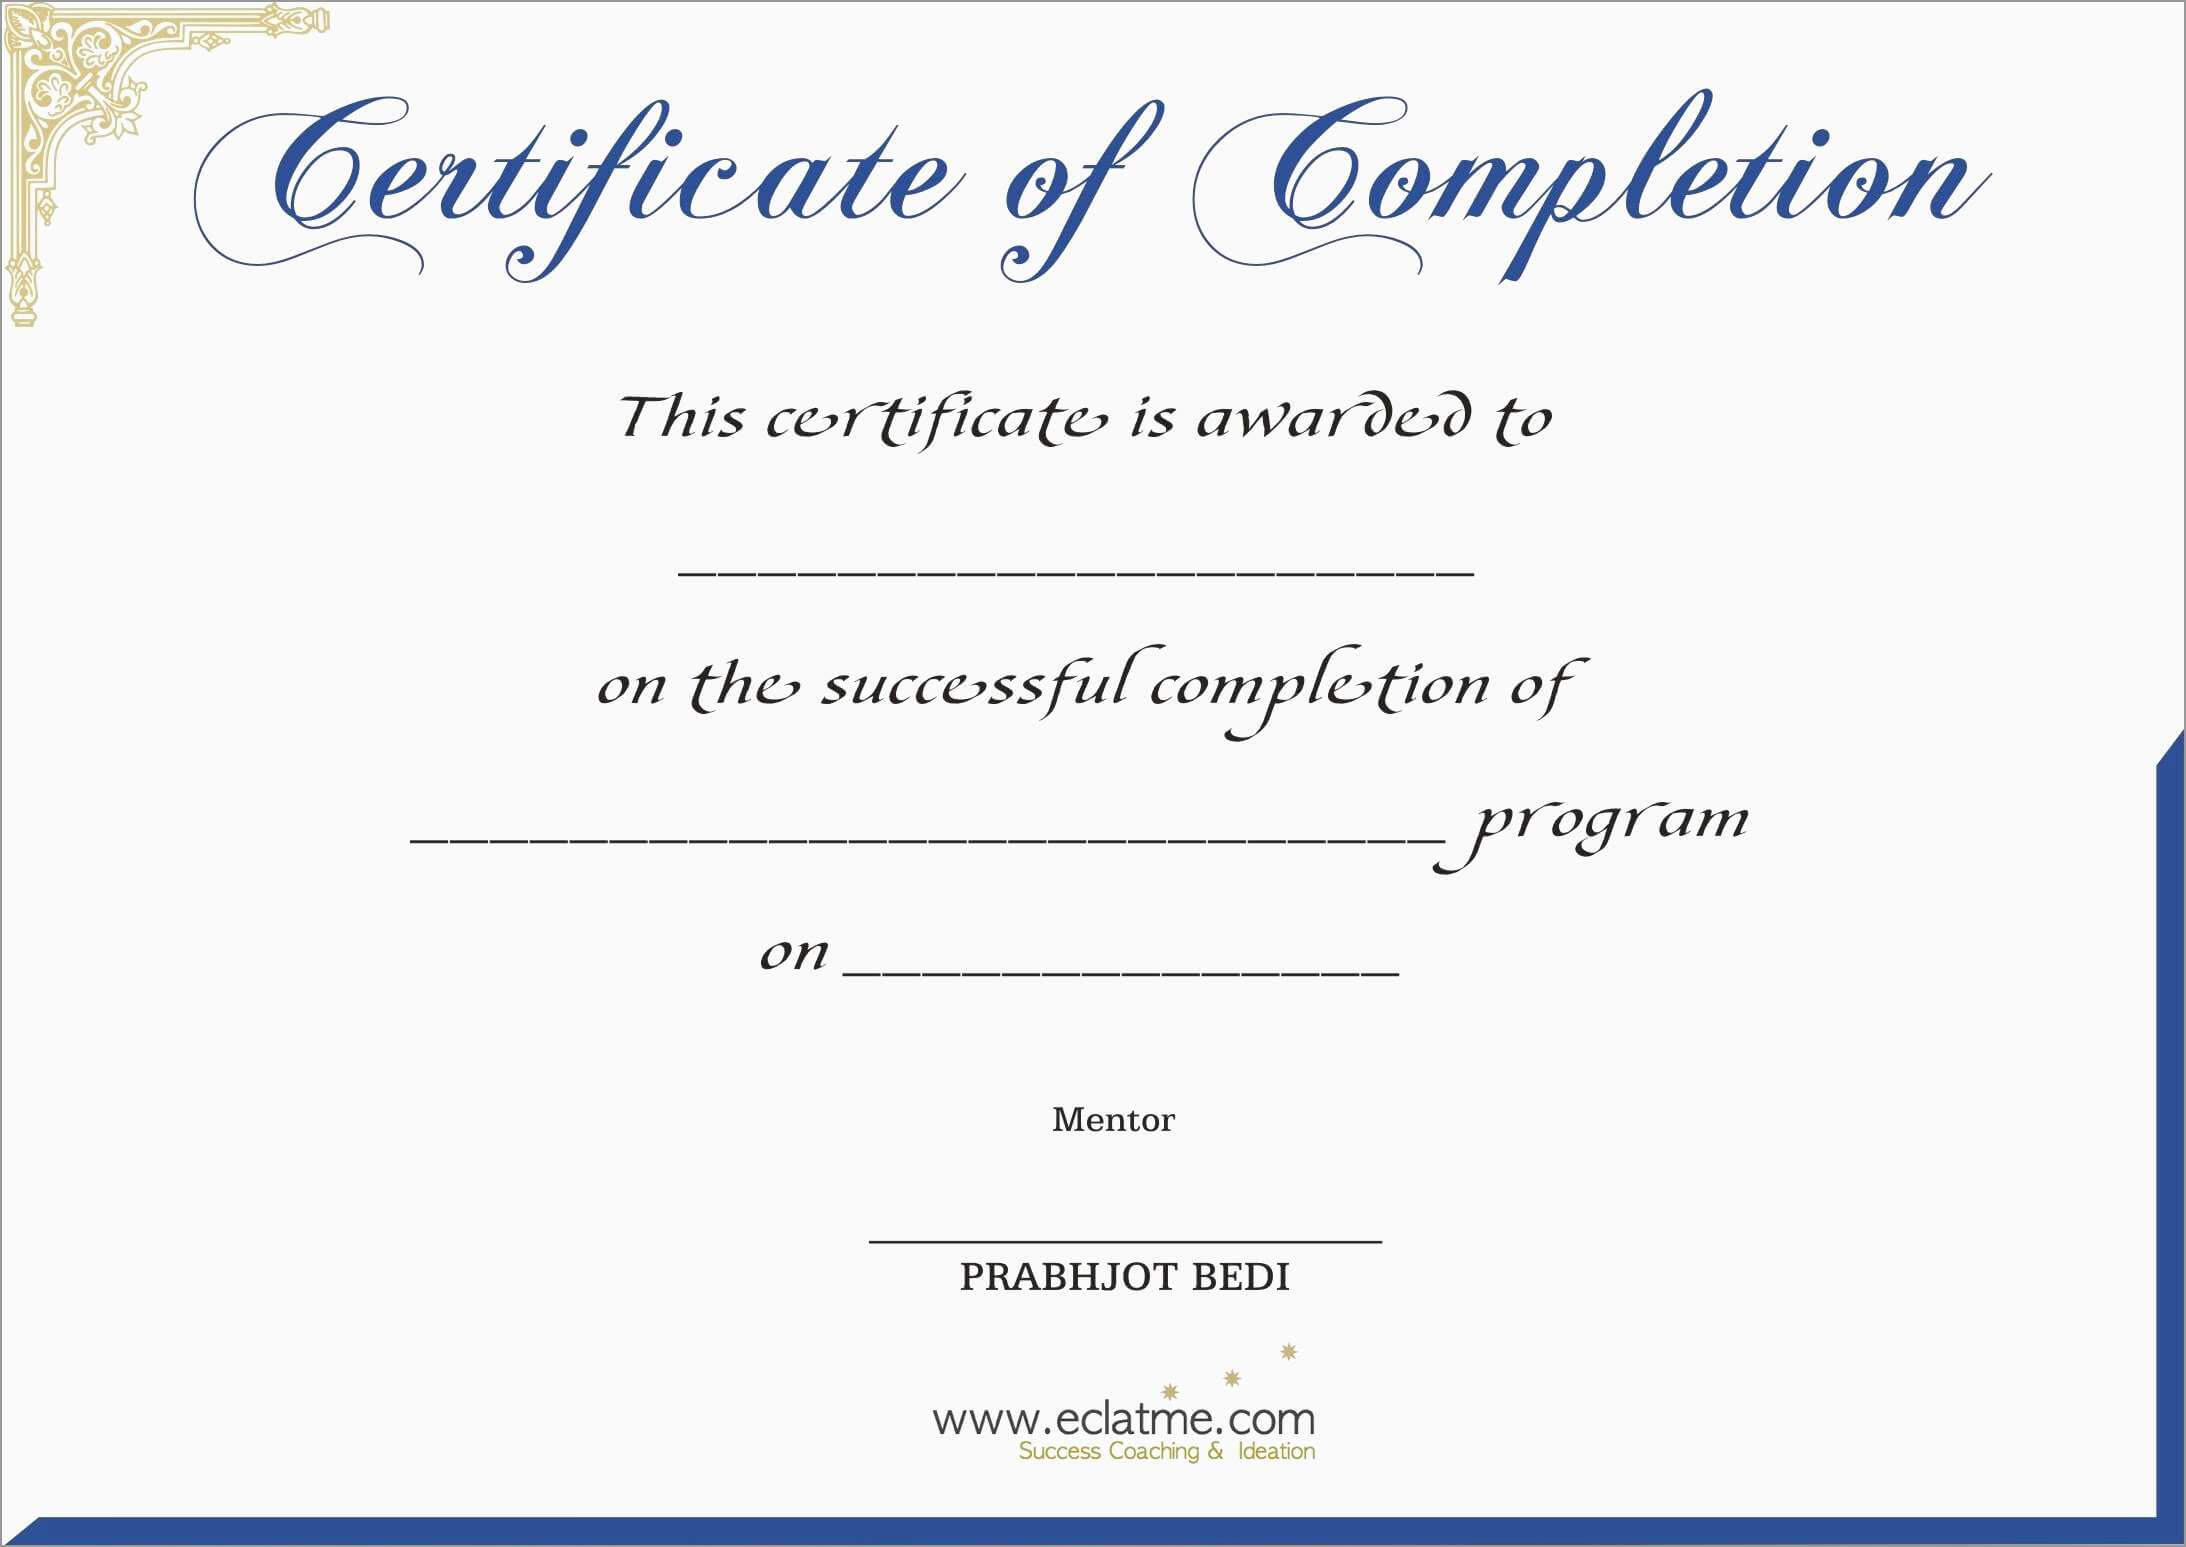 Free Printable Certificate Of Completion | Mult-Igry in Certificate Of Completion Template Free Printable